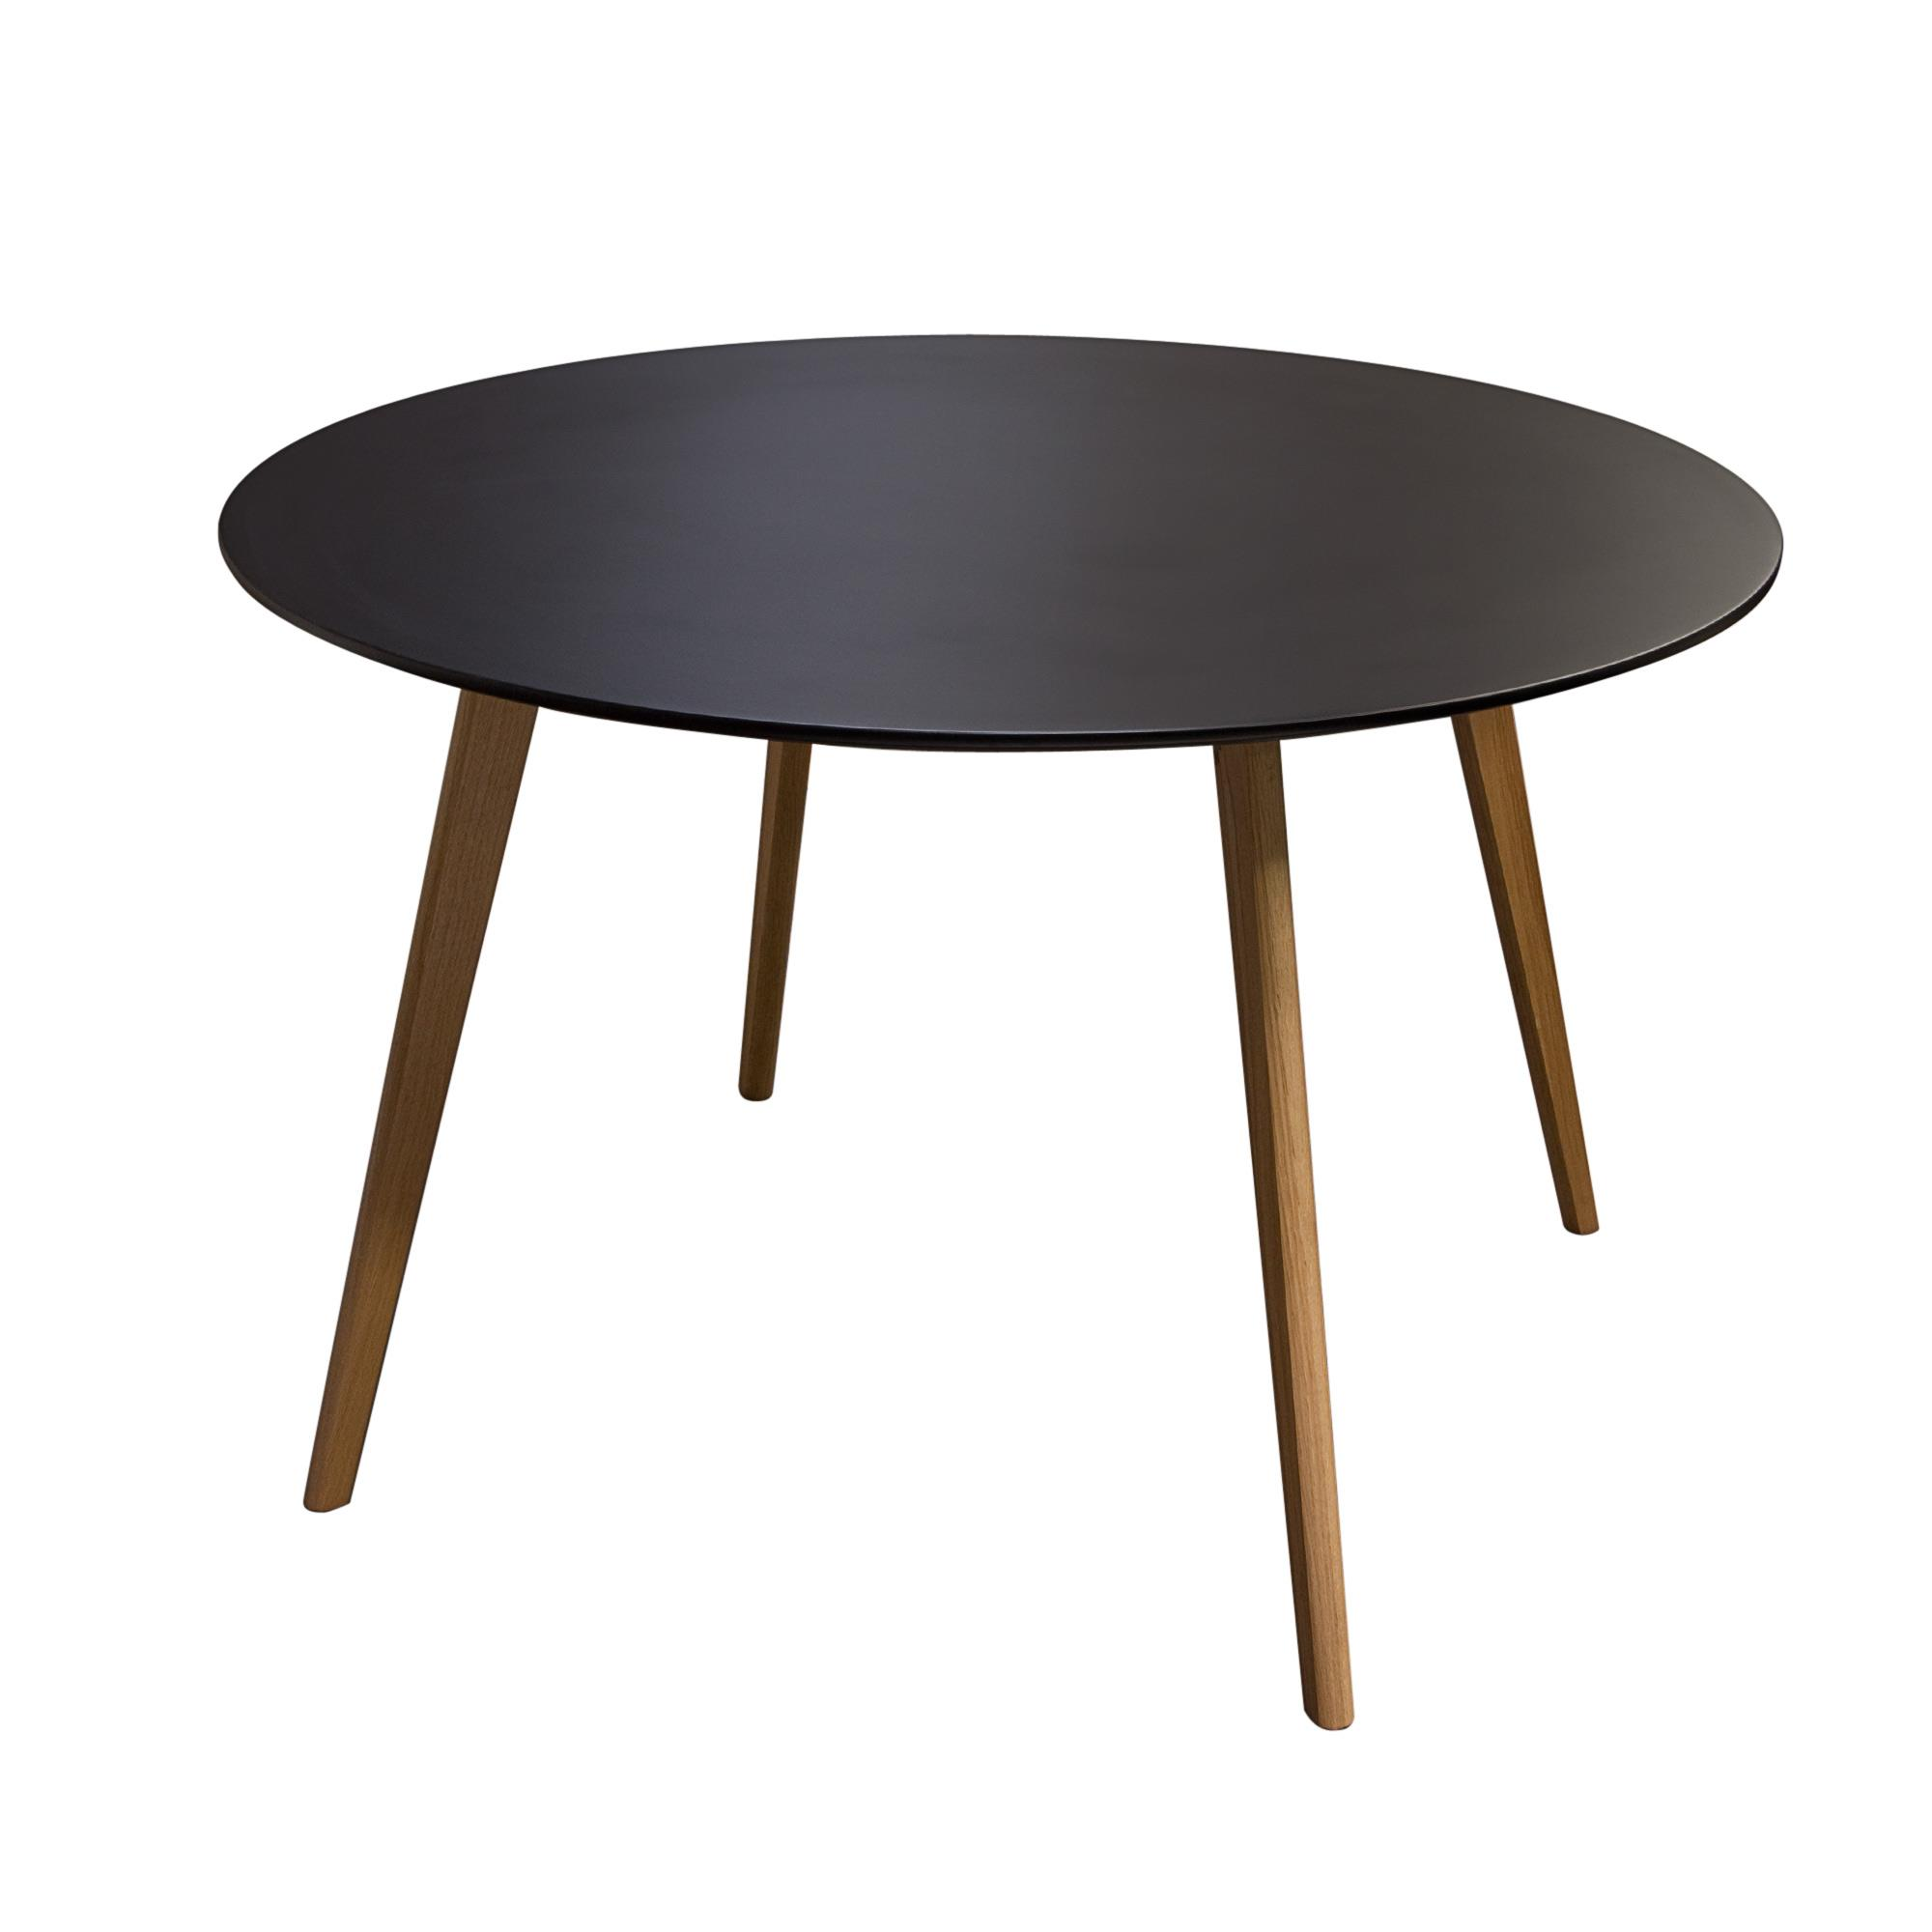 Diamond Sofa Urban Dining  Round Retro Dining Table with Solid Oak Legs - Item Number: COMETDTBL